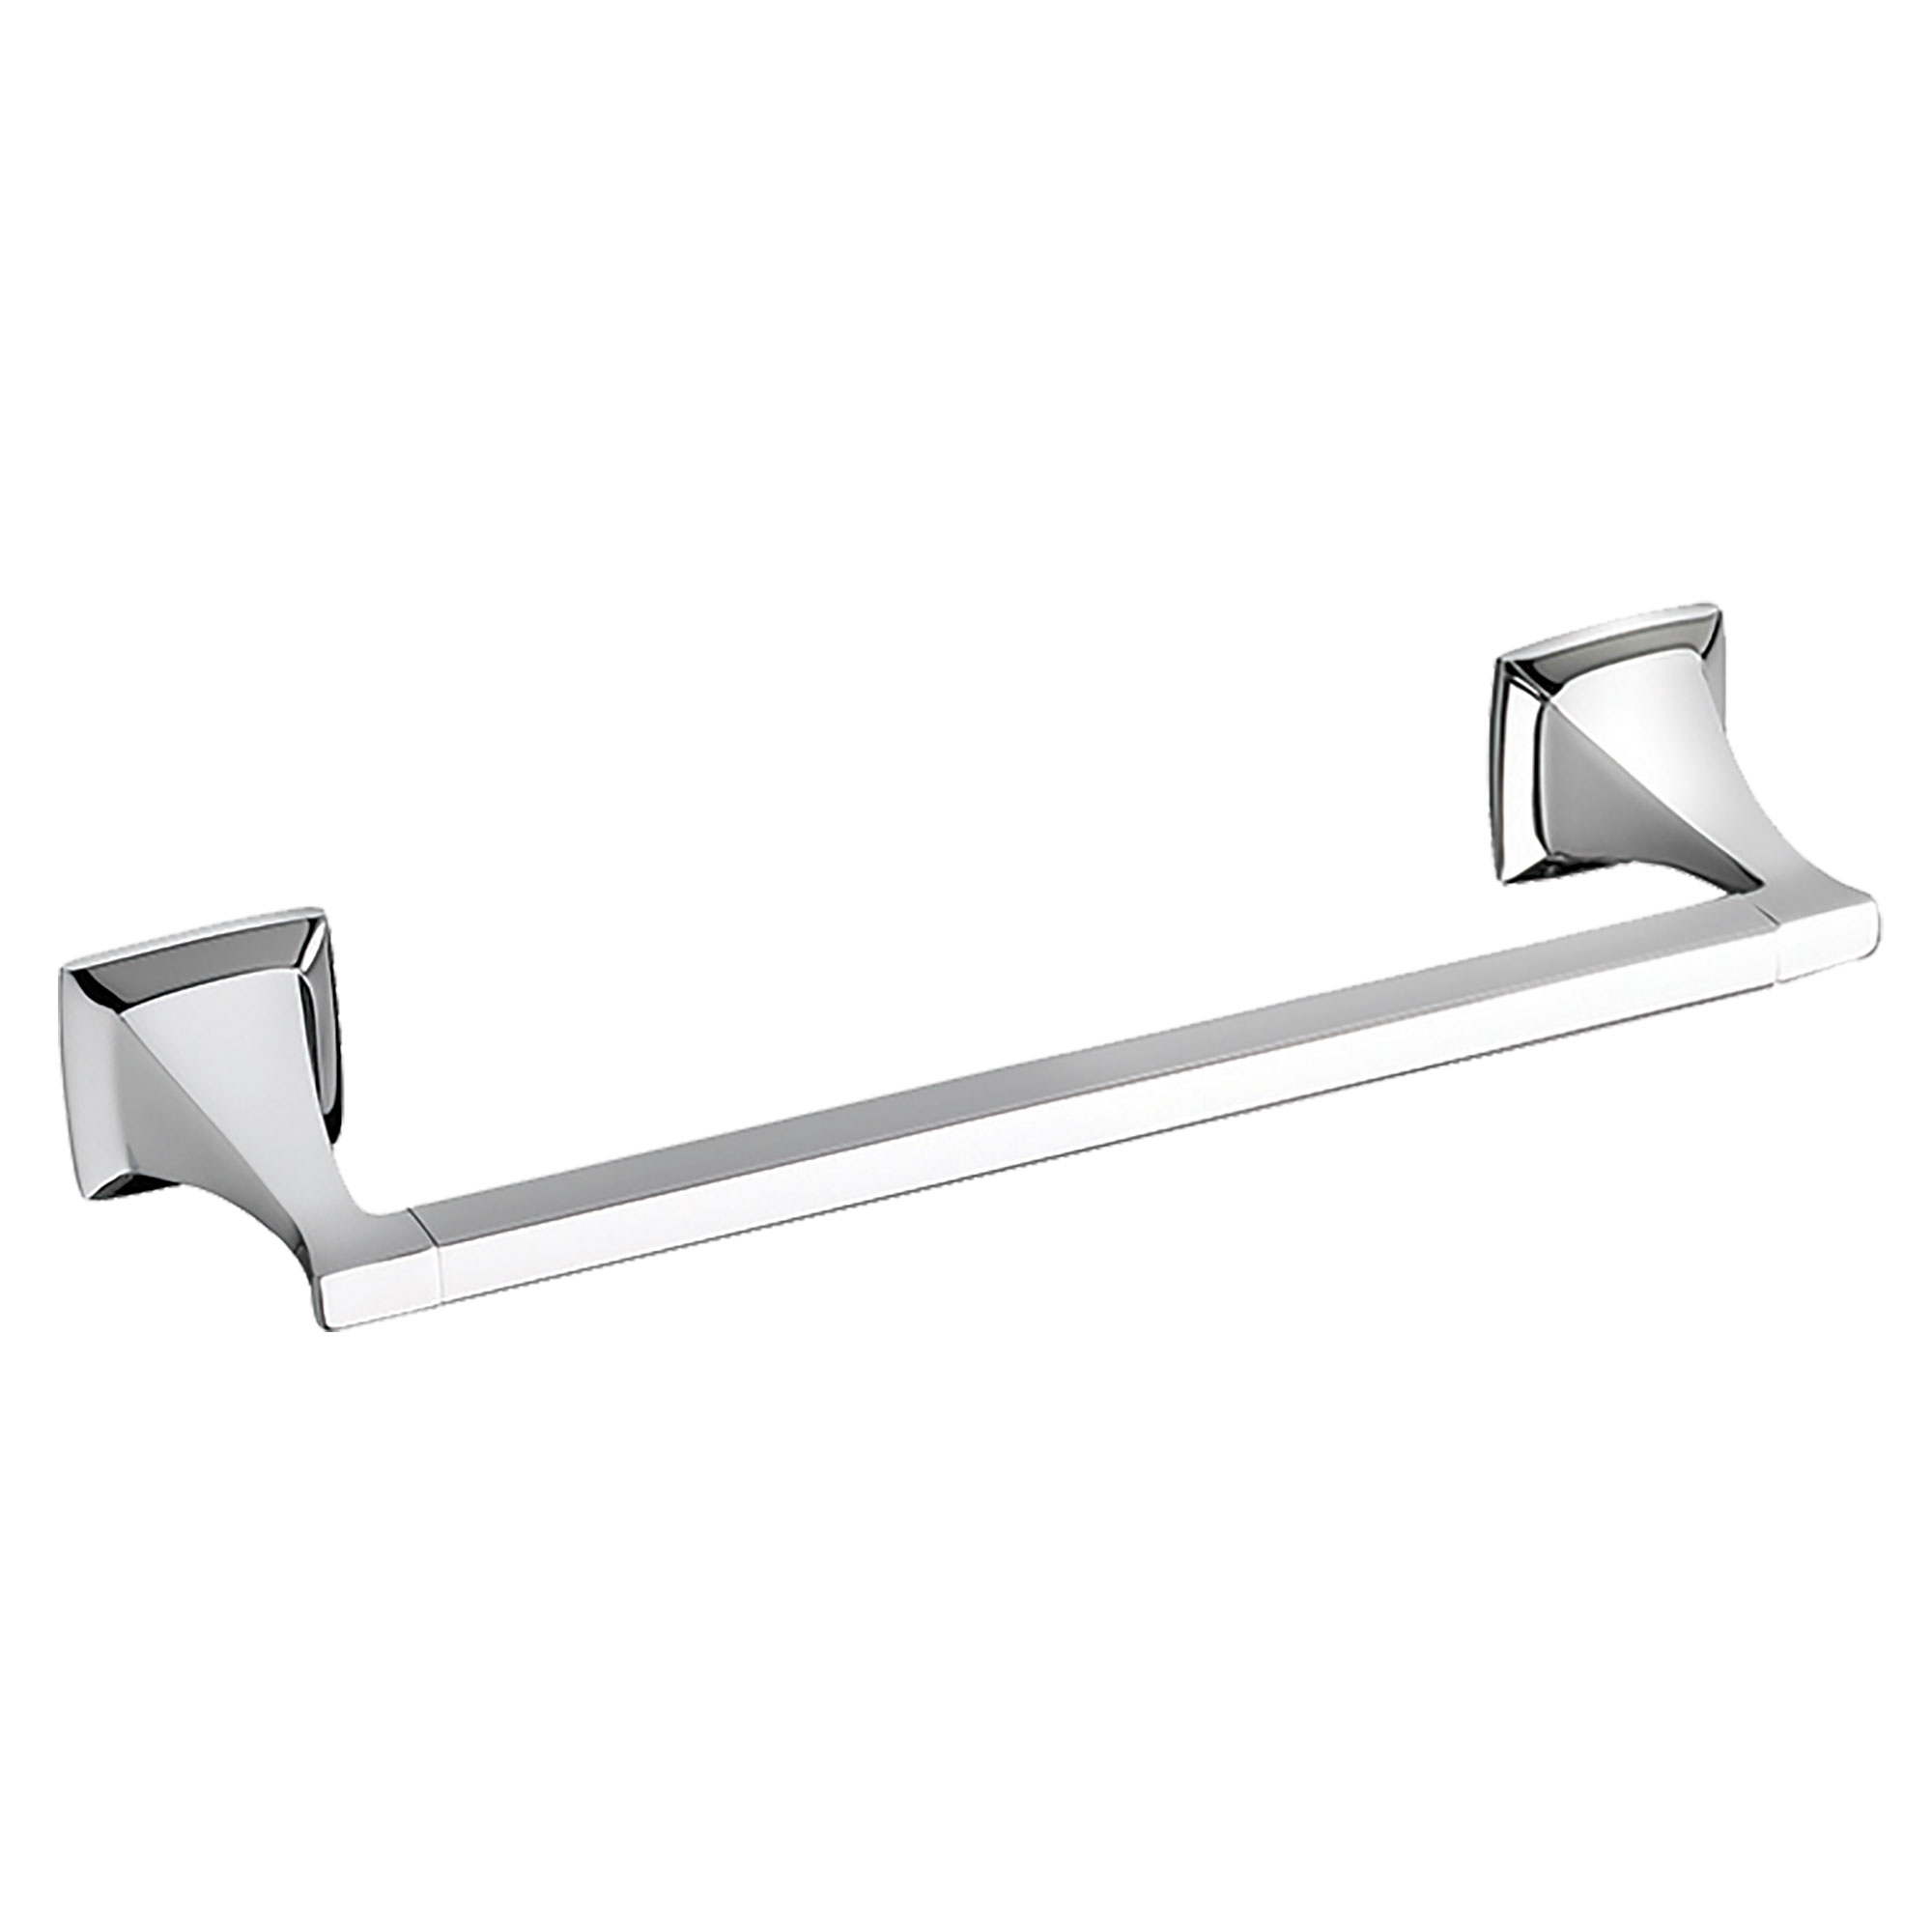 Keefe 12-inch Towel Bar - Projects Model